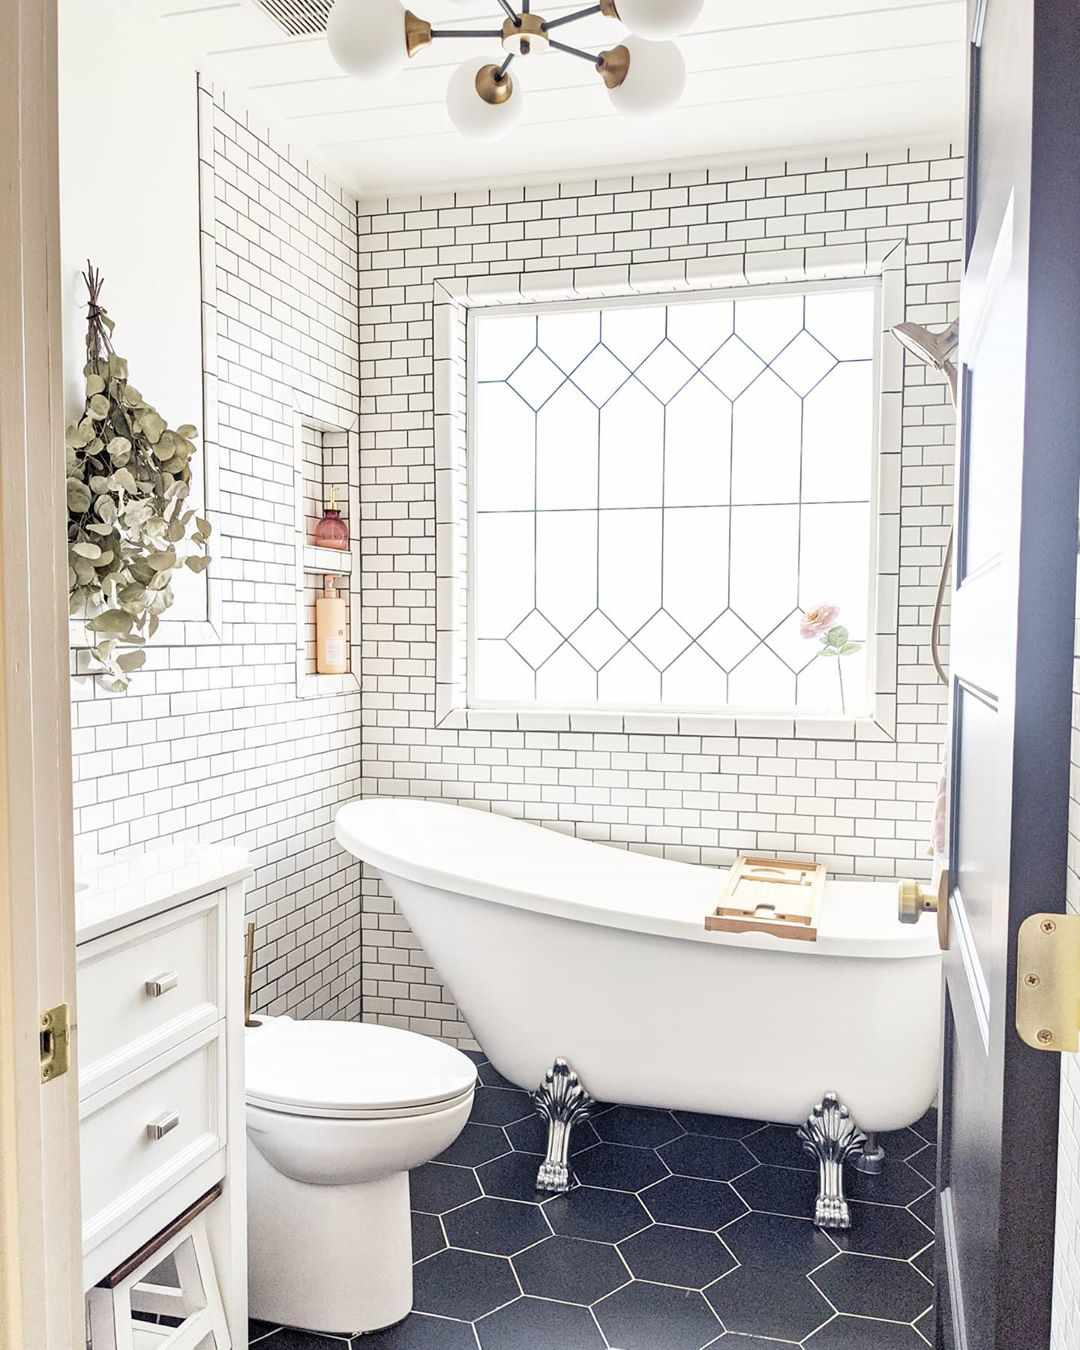 Bathroom with subway tile to the ceiling